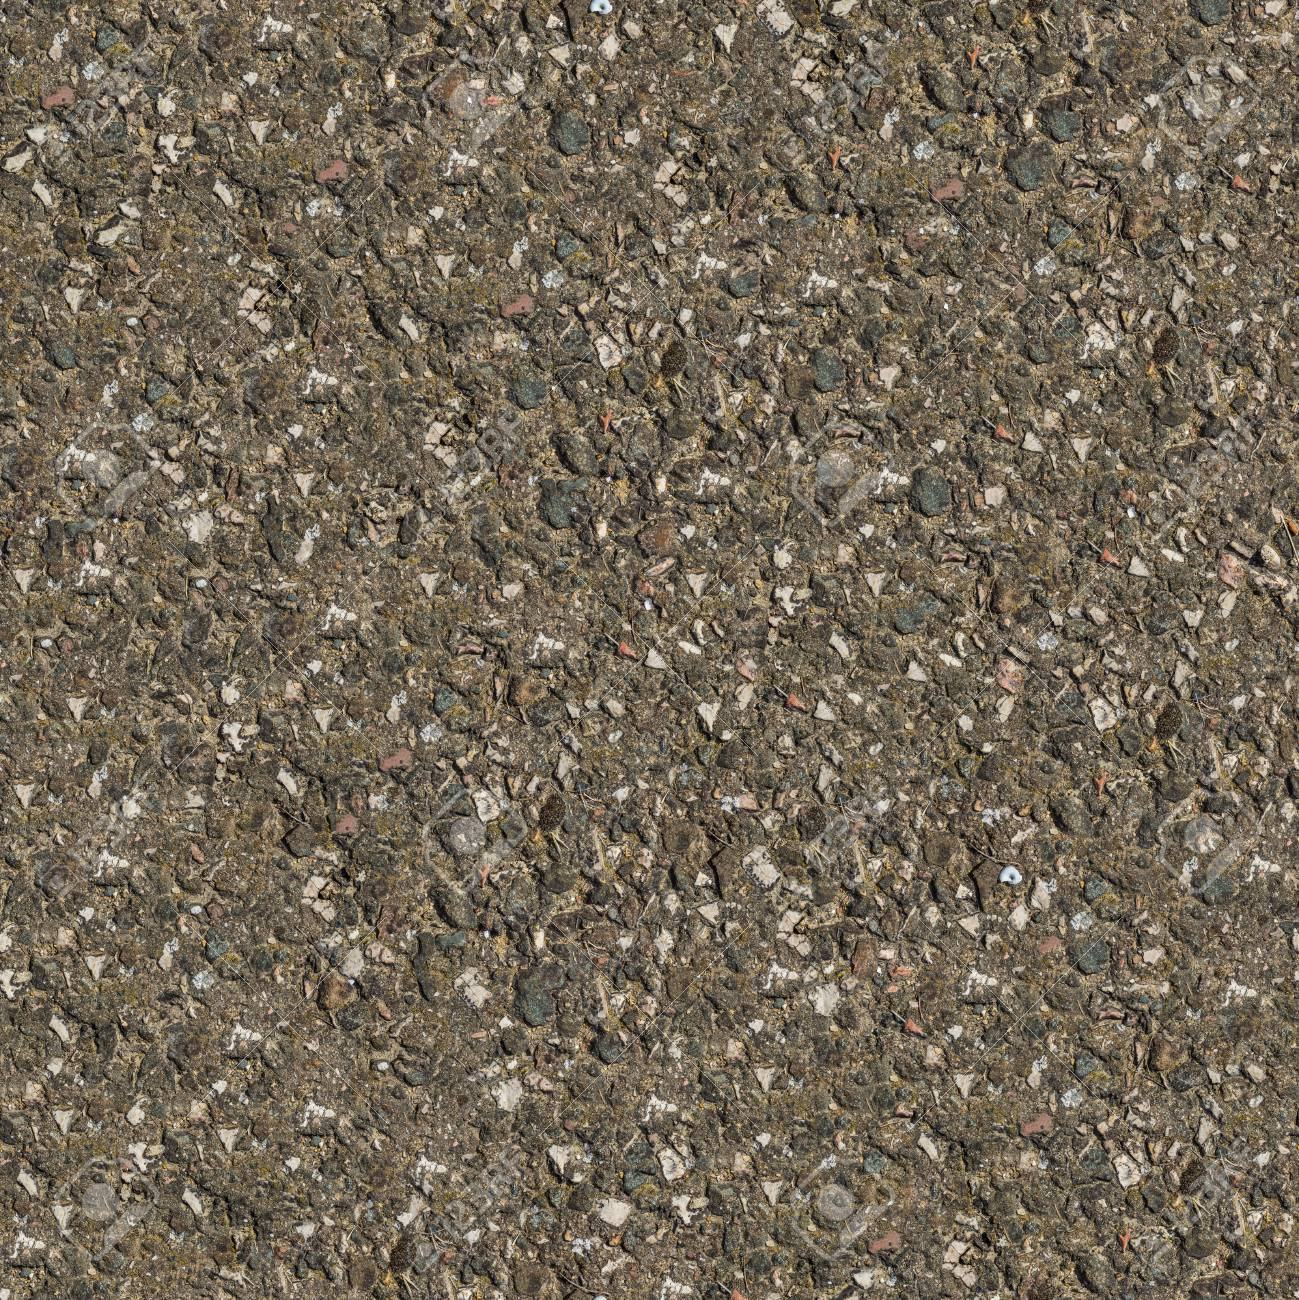 Seamless Tileable Texture of Fragment of Old Stone Country Road. Big Size. Stock Photo - 22361630